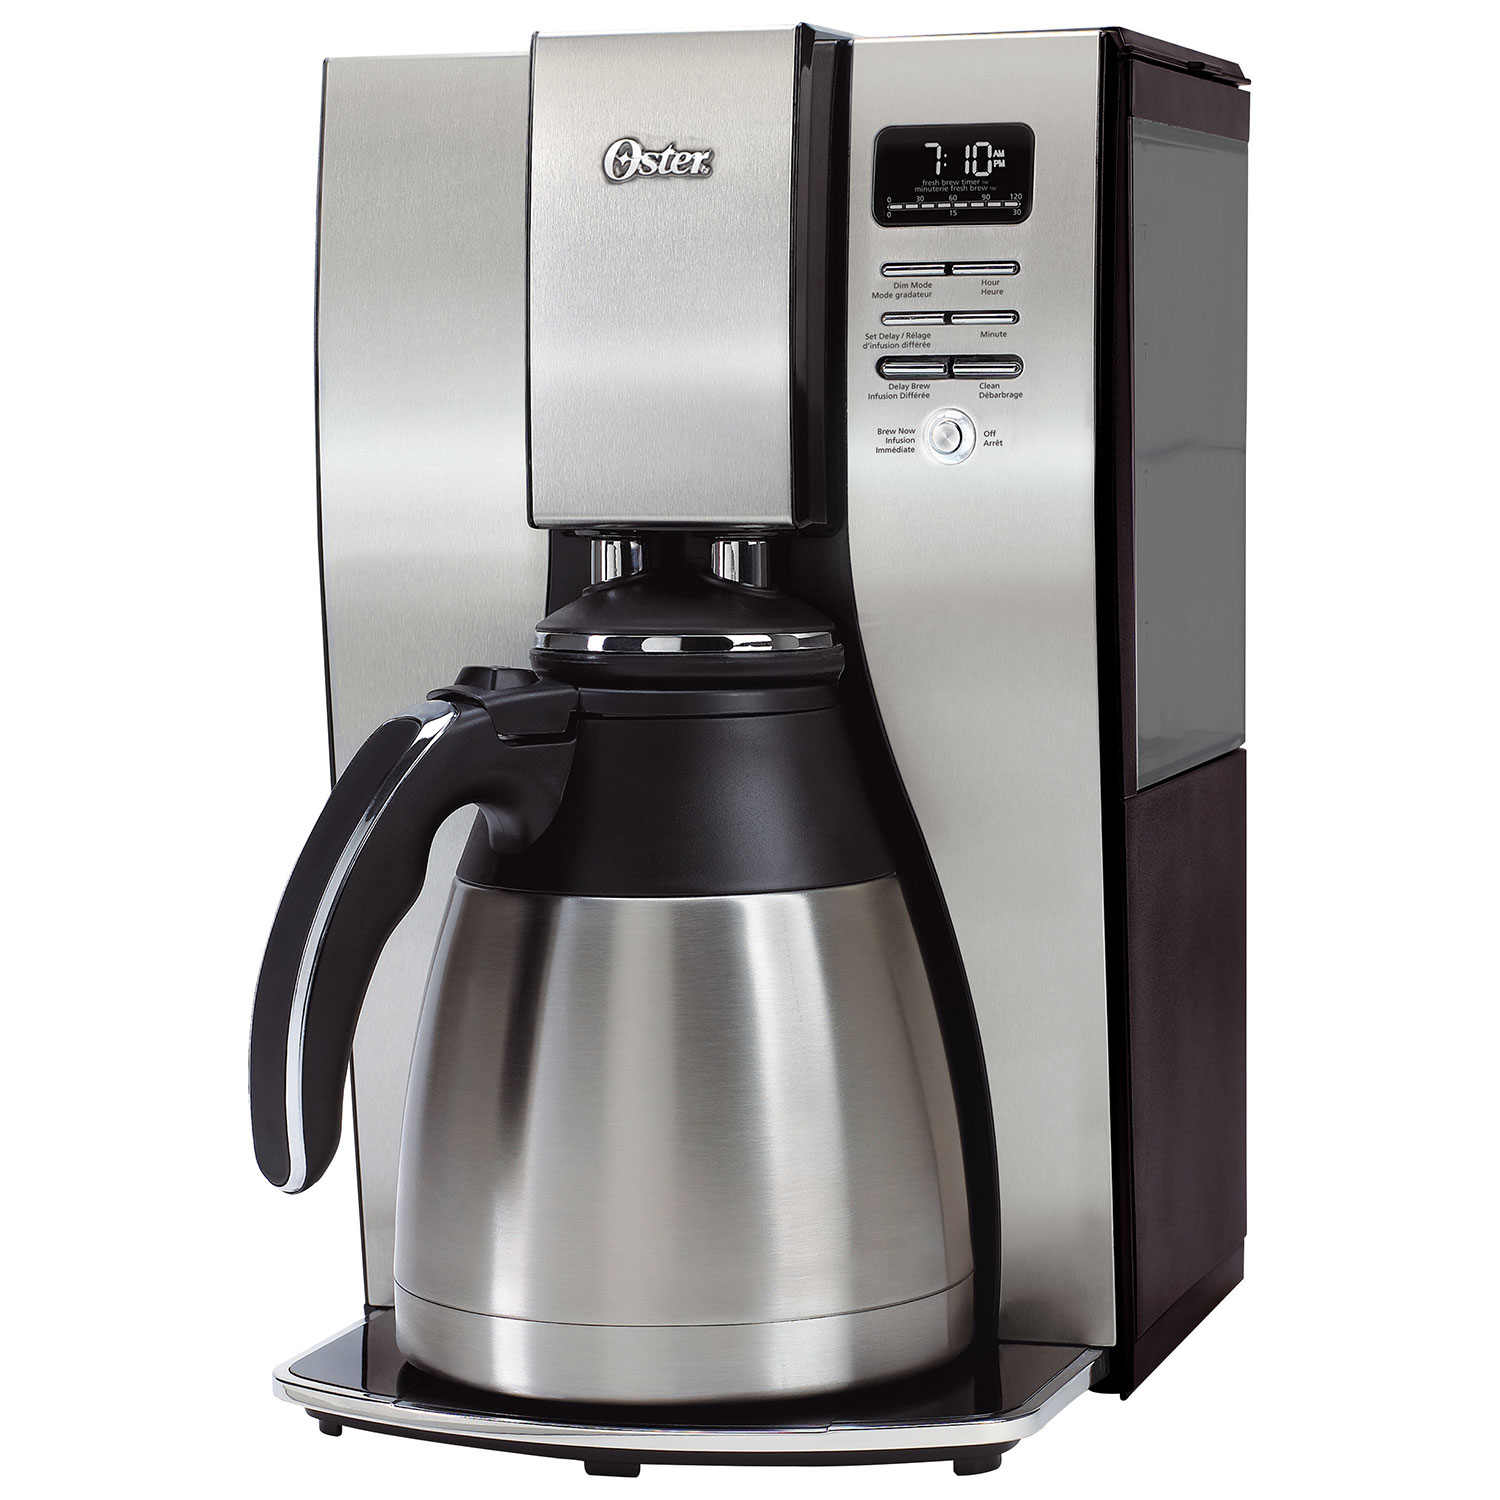 rfb oster thermal 10-cup coffee maker (bvstpstx95-033) – stainless